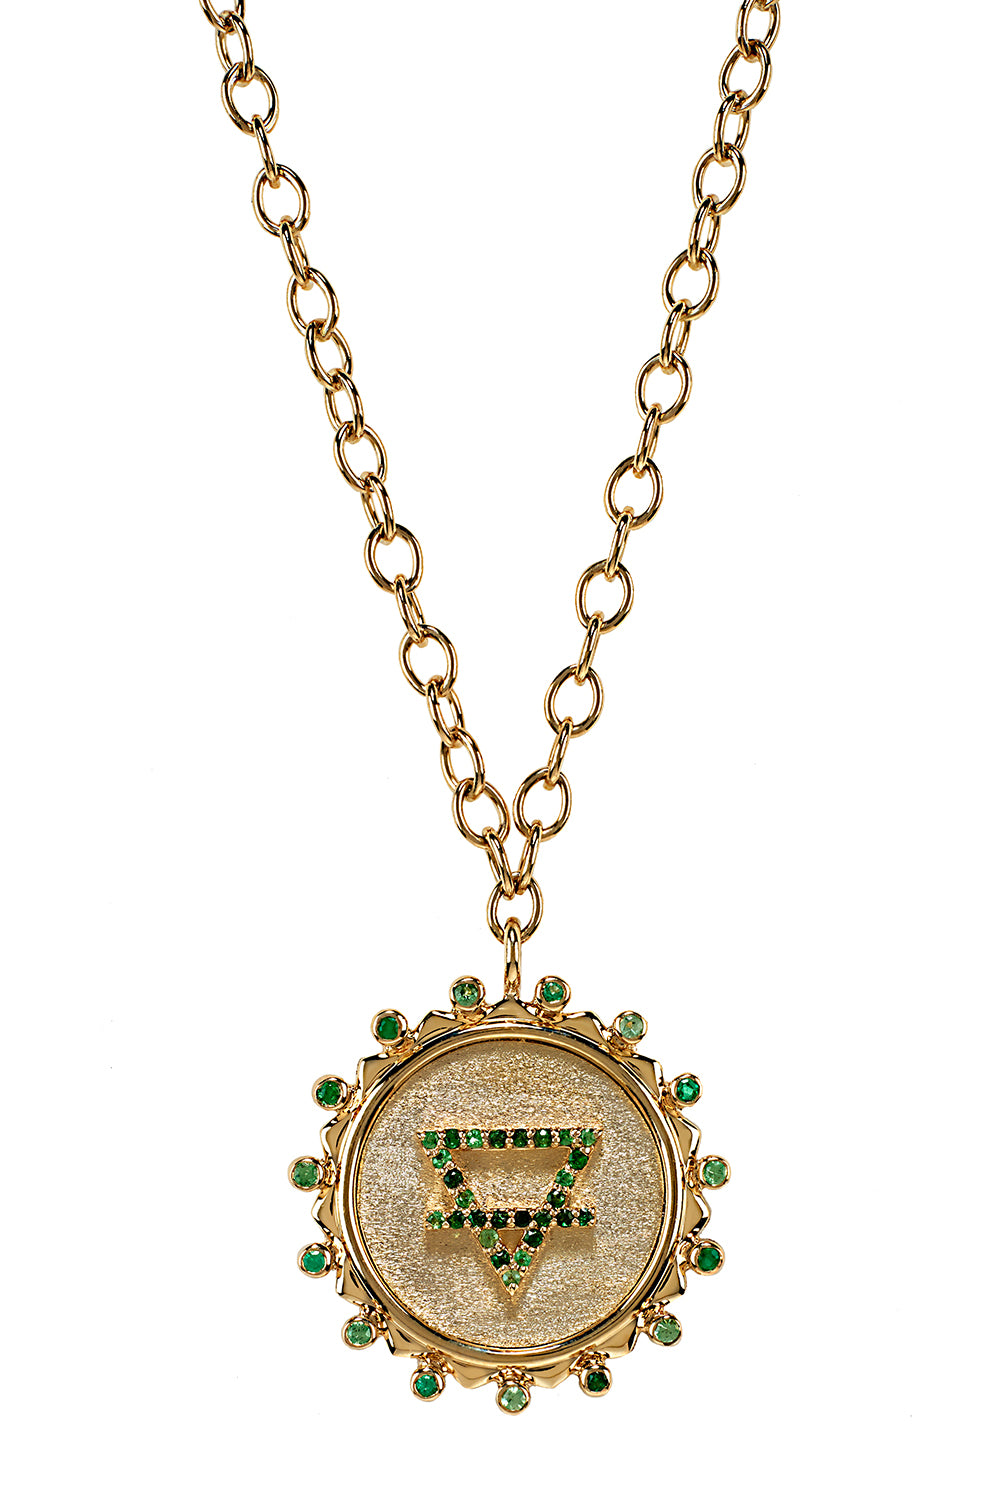 Down To Earth Element Necklace in 14K Yellow Gold with Green Sapphires